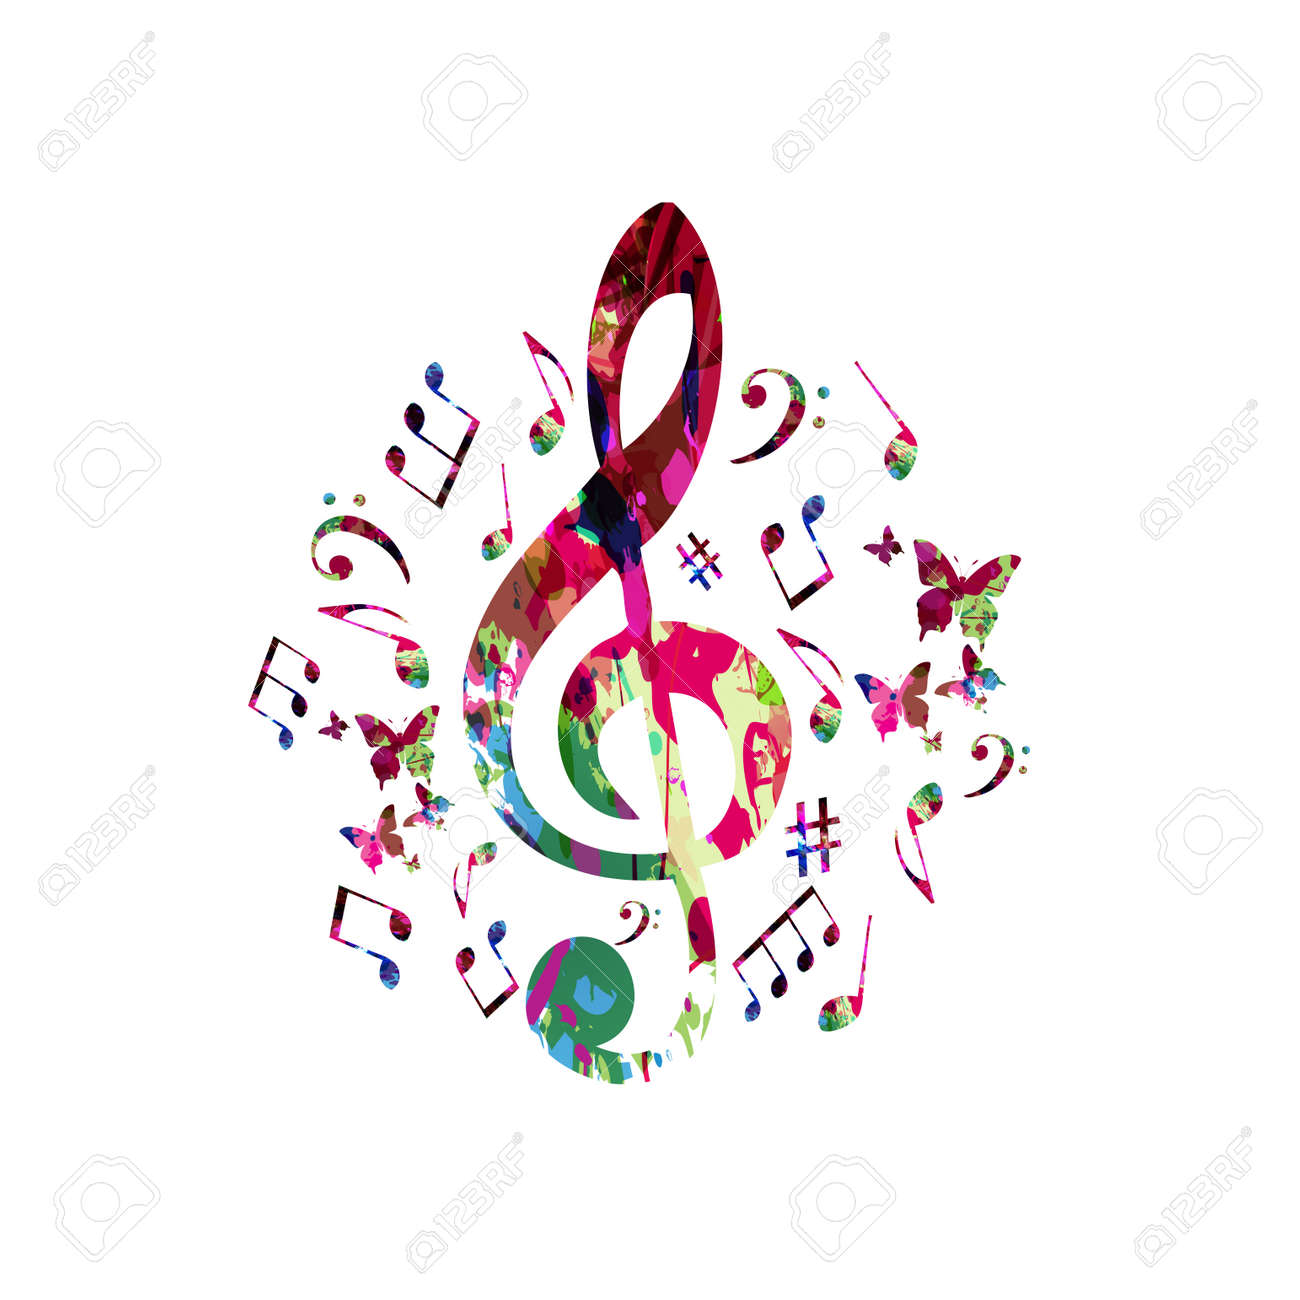 Music Poster With Music Notes. Colorful G-clef With Music Notes ...